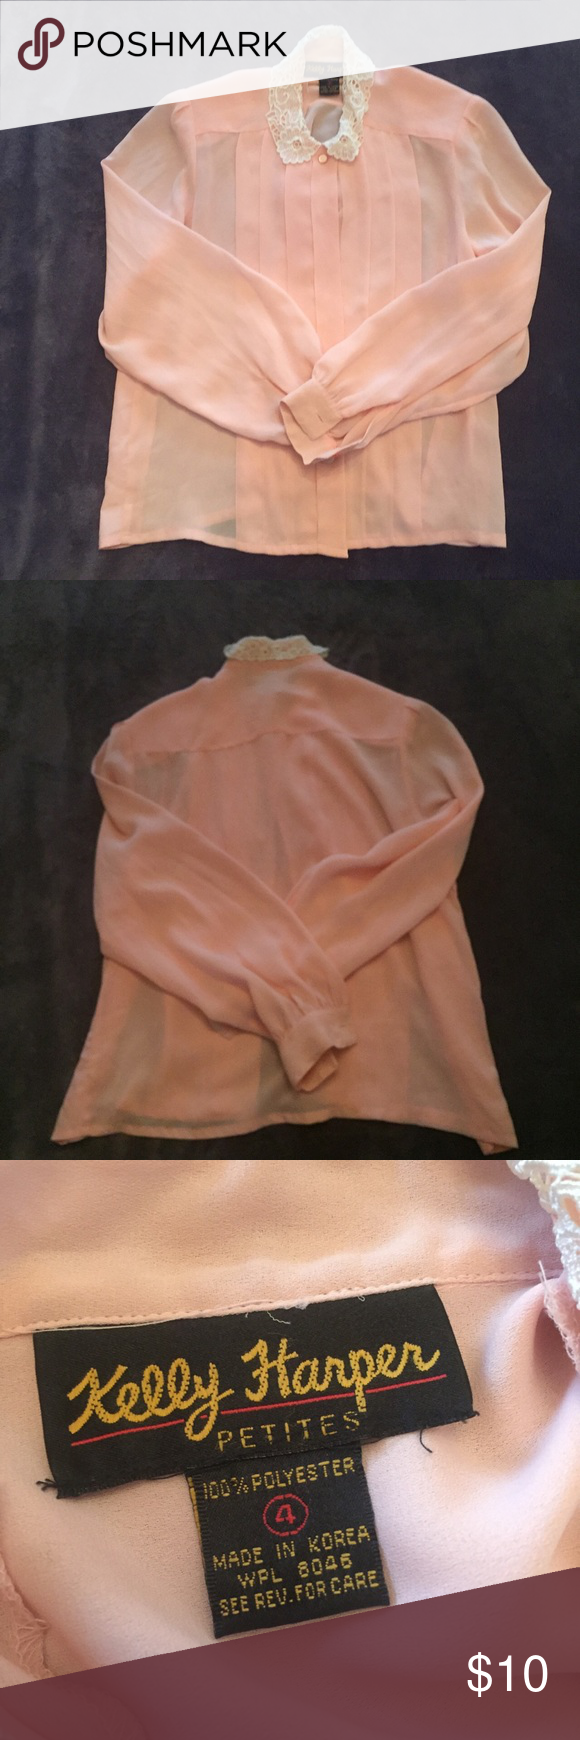 CUTE VINTAGE PINK BLOUSE Adorable pink blouse I bought from another posher. It's just been sitting in my closet. :( It's vintage so it's one of a kind. In mint condition. Size 4. Fabric details in last photo. Vintage Tops Blouses